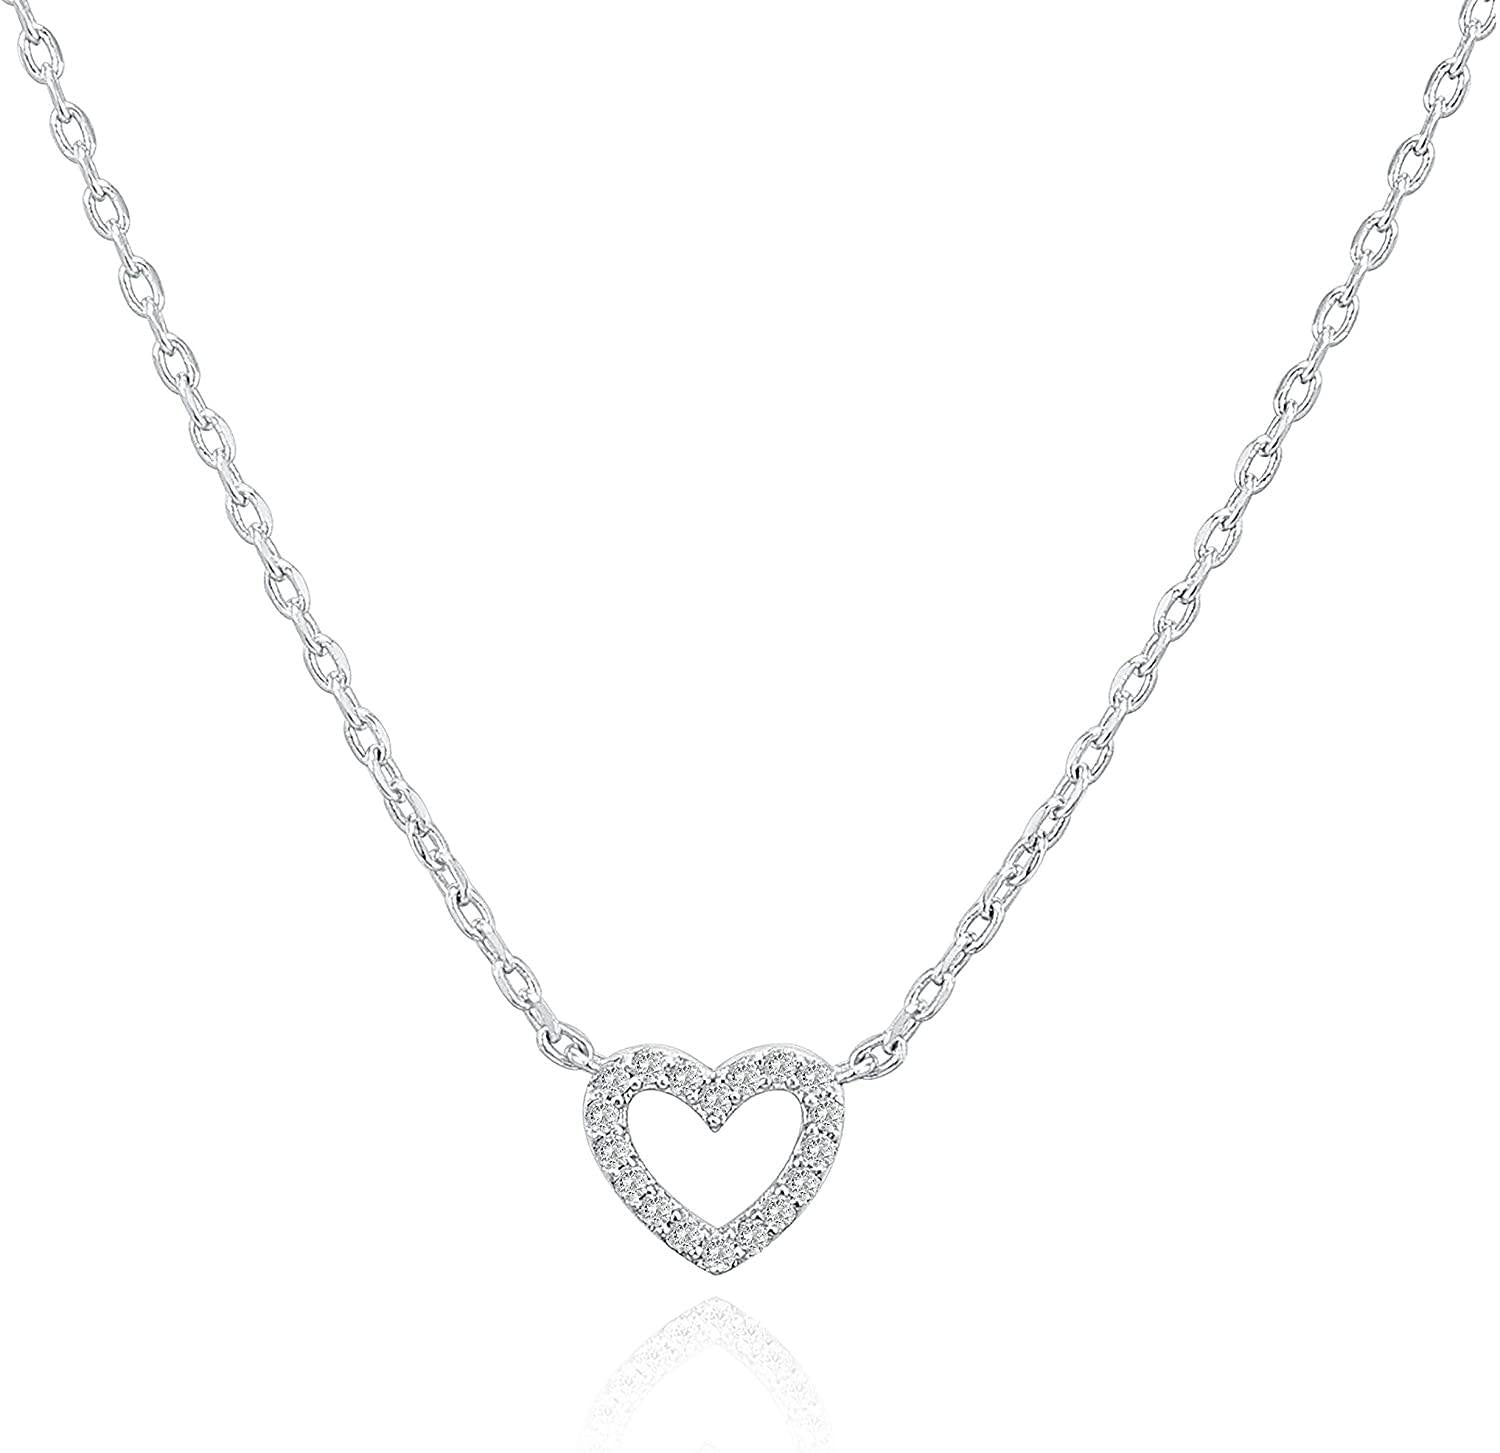 14K Gold Plated Cubic Zirconia Heart Necklace - Shop Ja'Kai